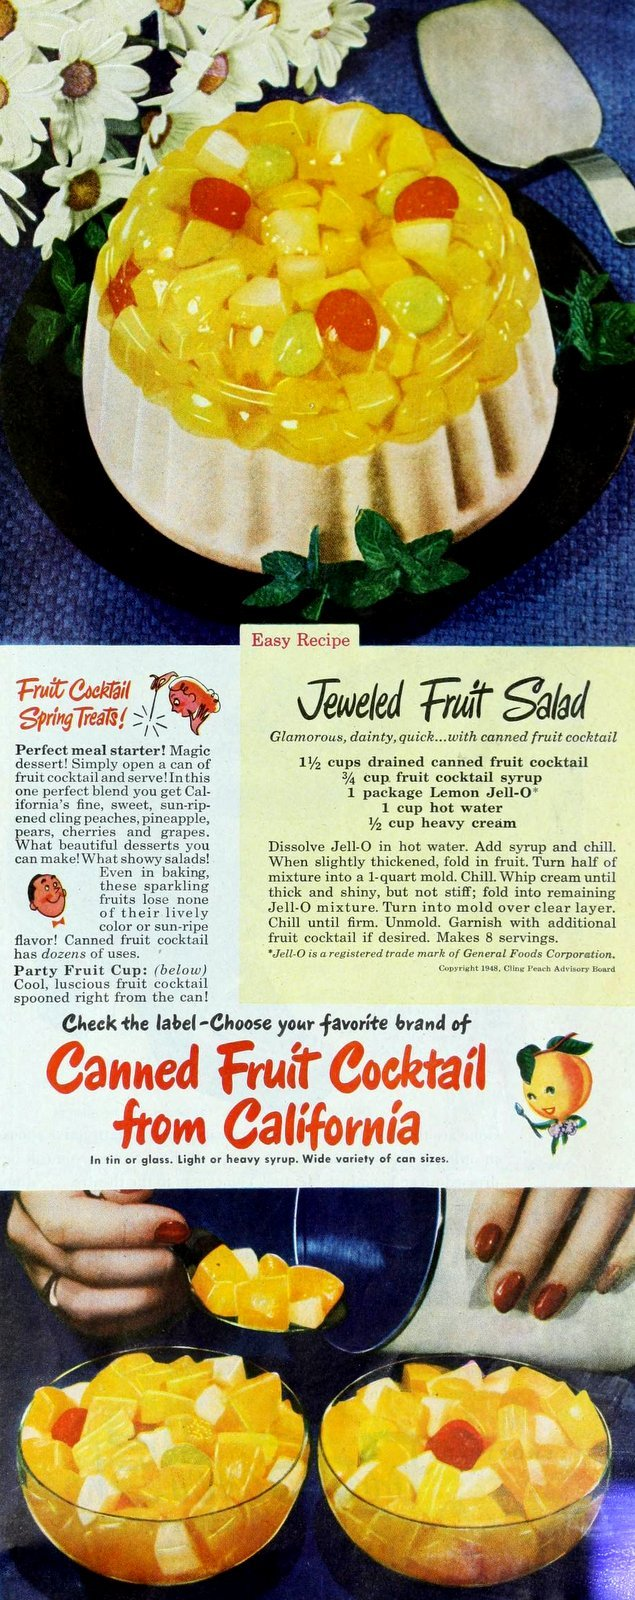 1948 recipe for jeweled fruit salad - made with gelatin and canned fruit cocktail